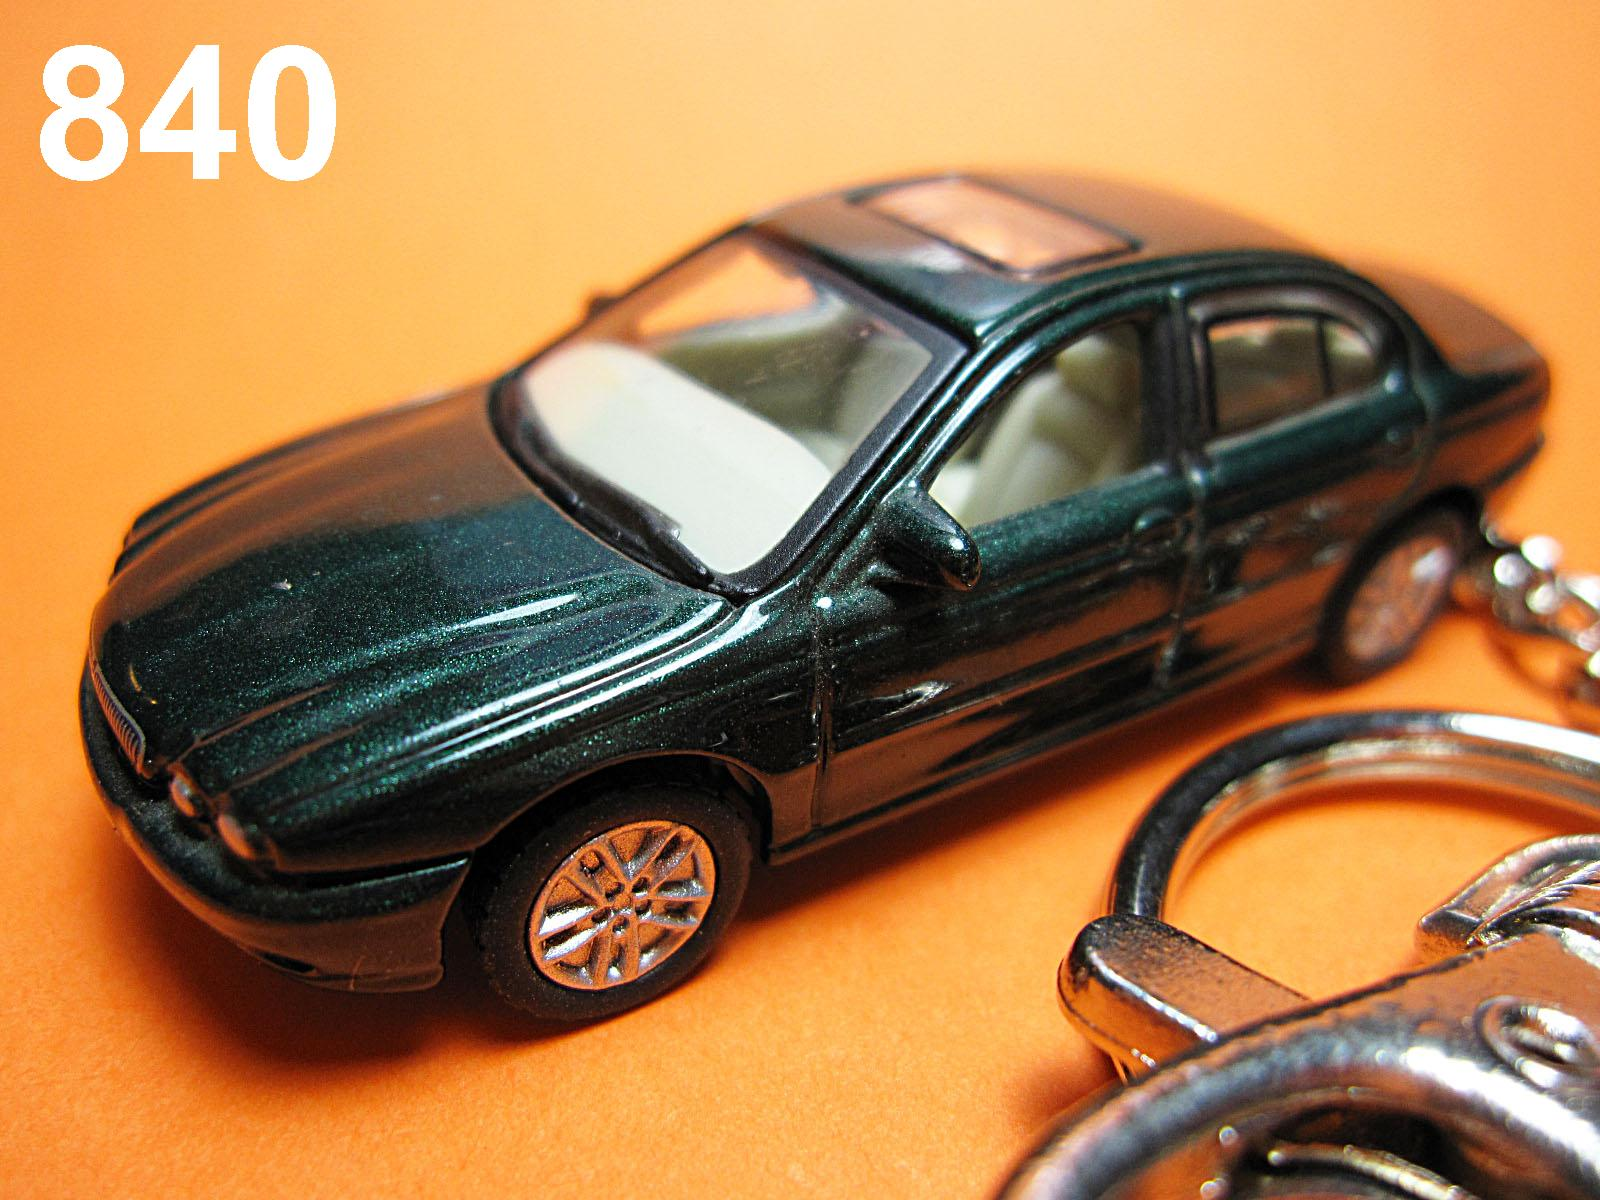 Jaguar X-Type (Deep Metallic Green) Die-cast Key Chain